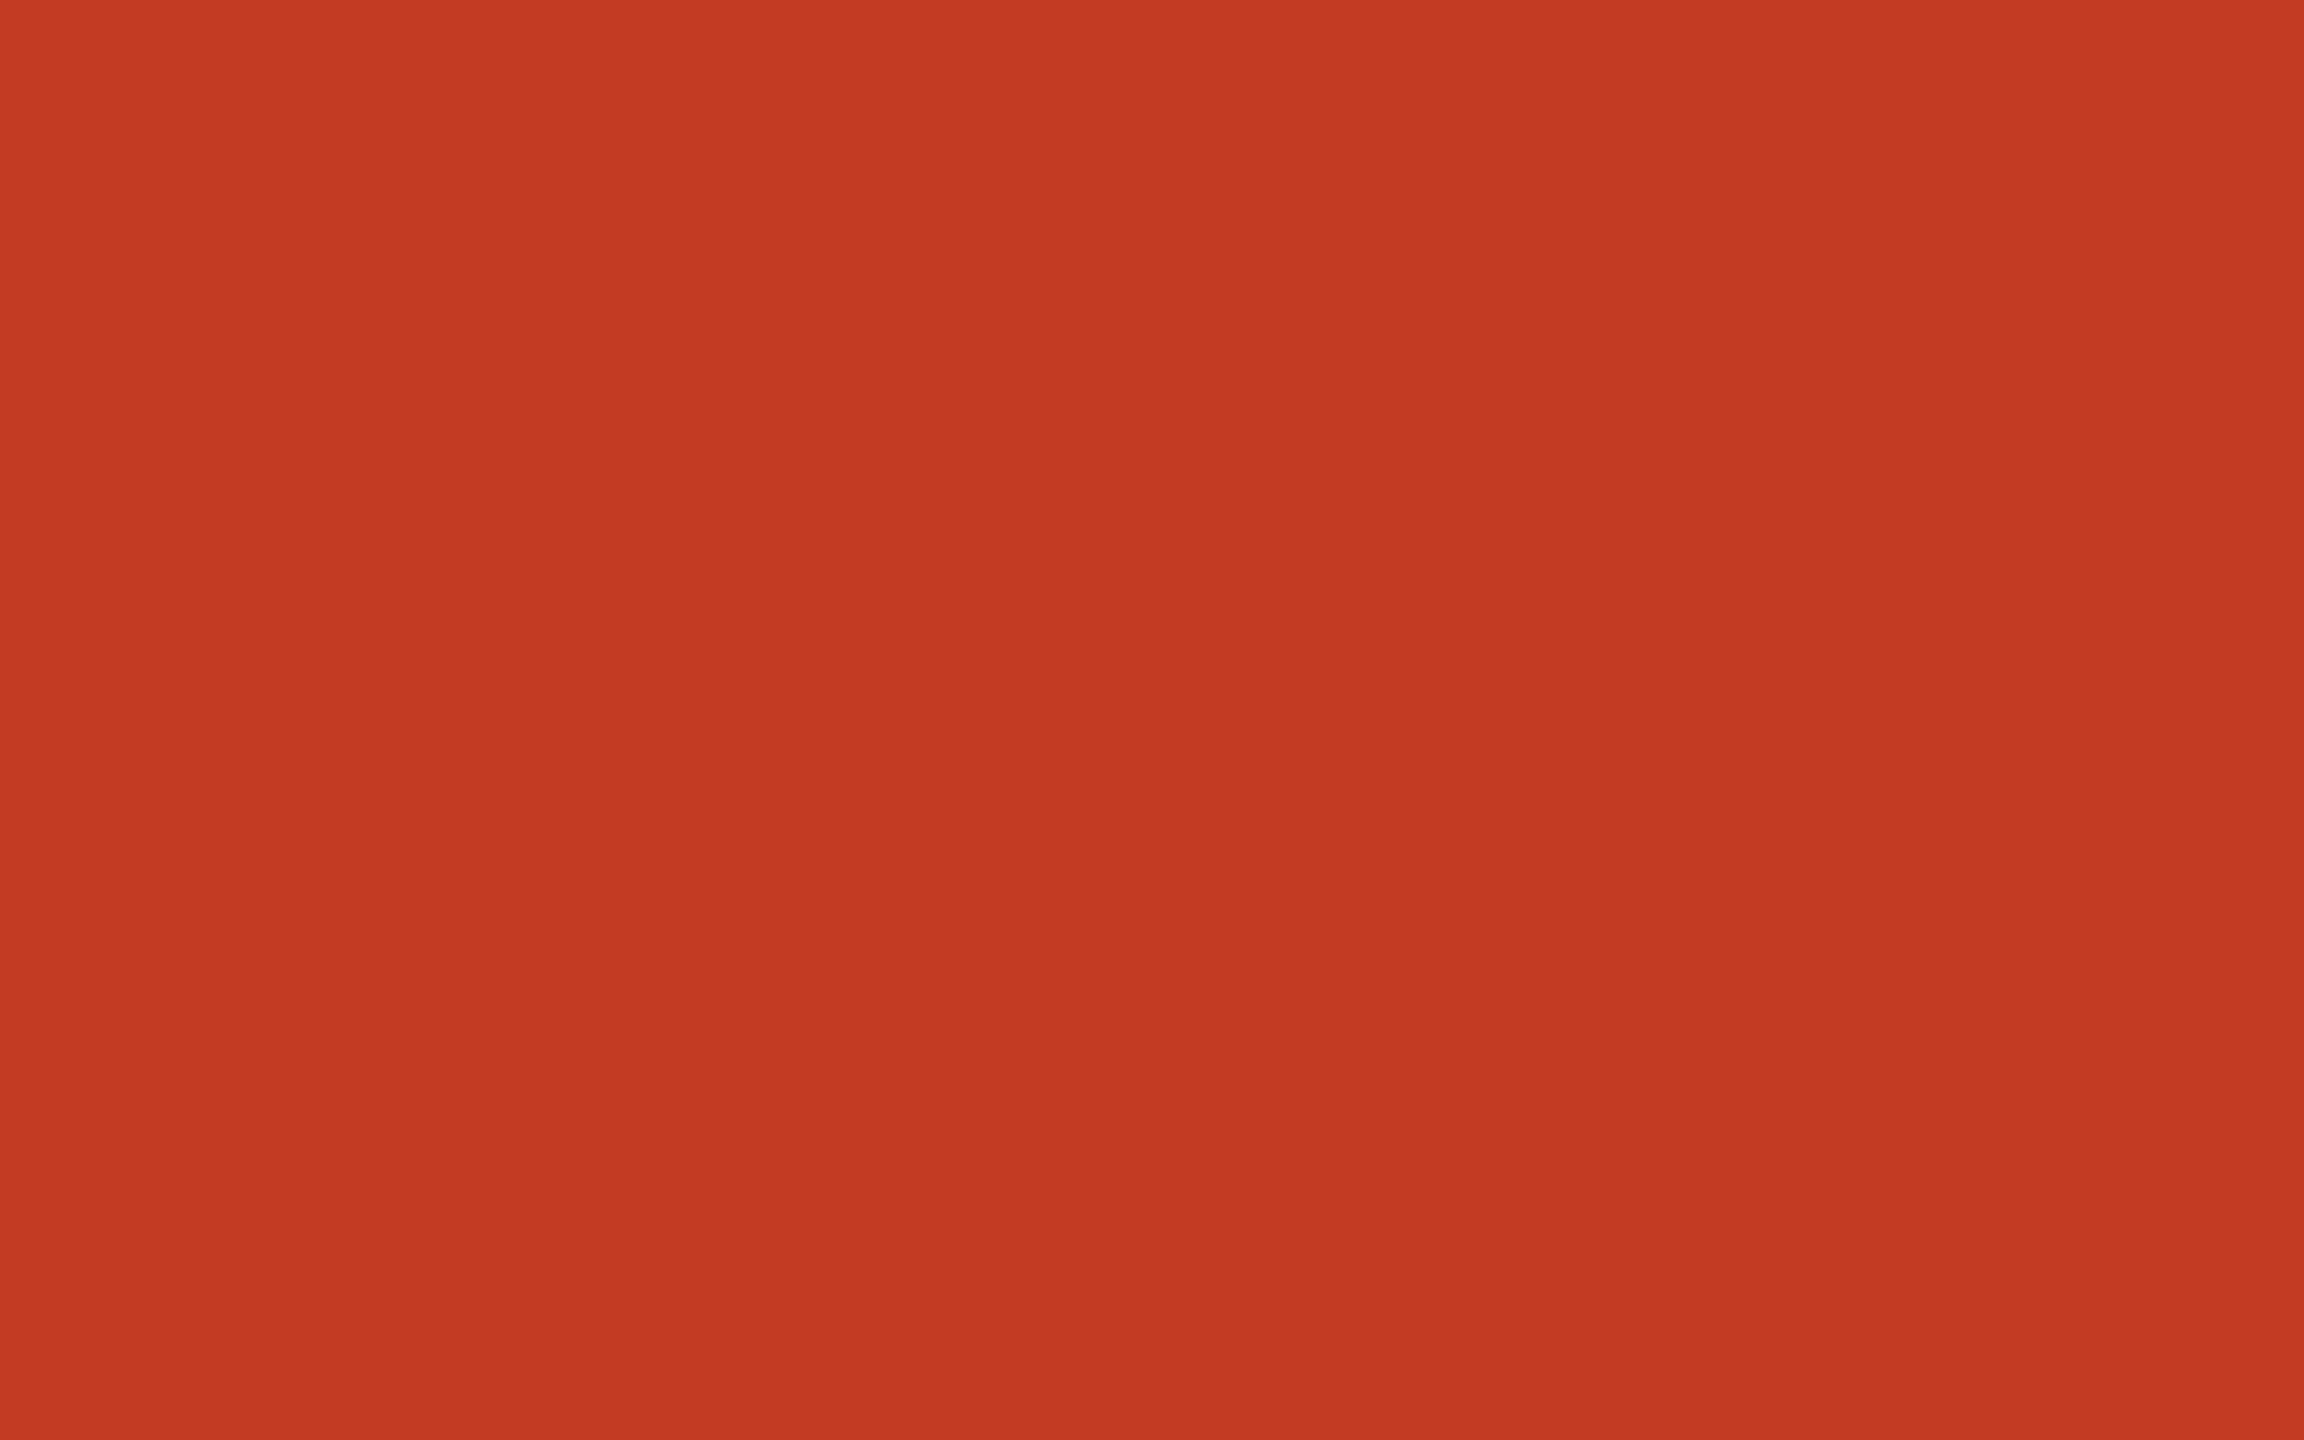 2304x1440 Dark Pastel Red Solid Color Background